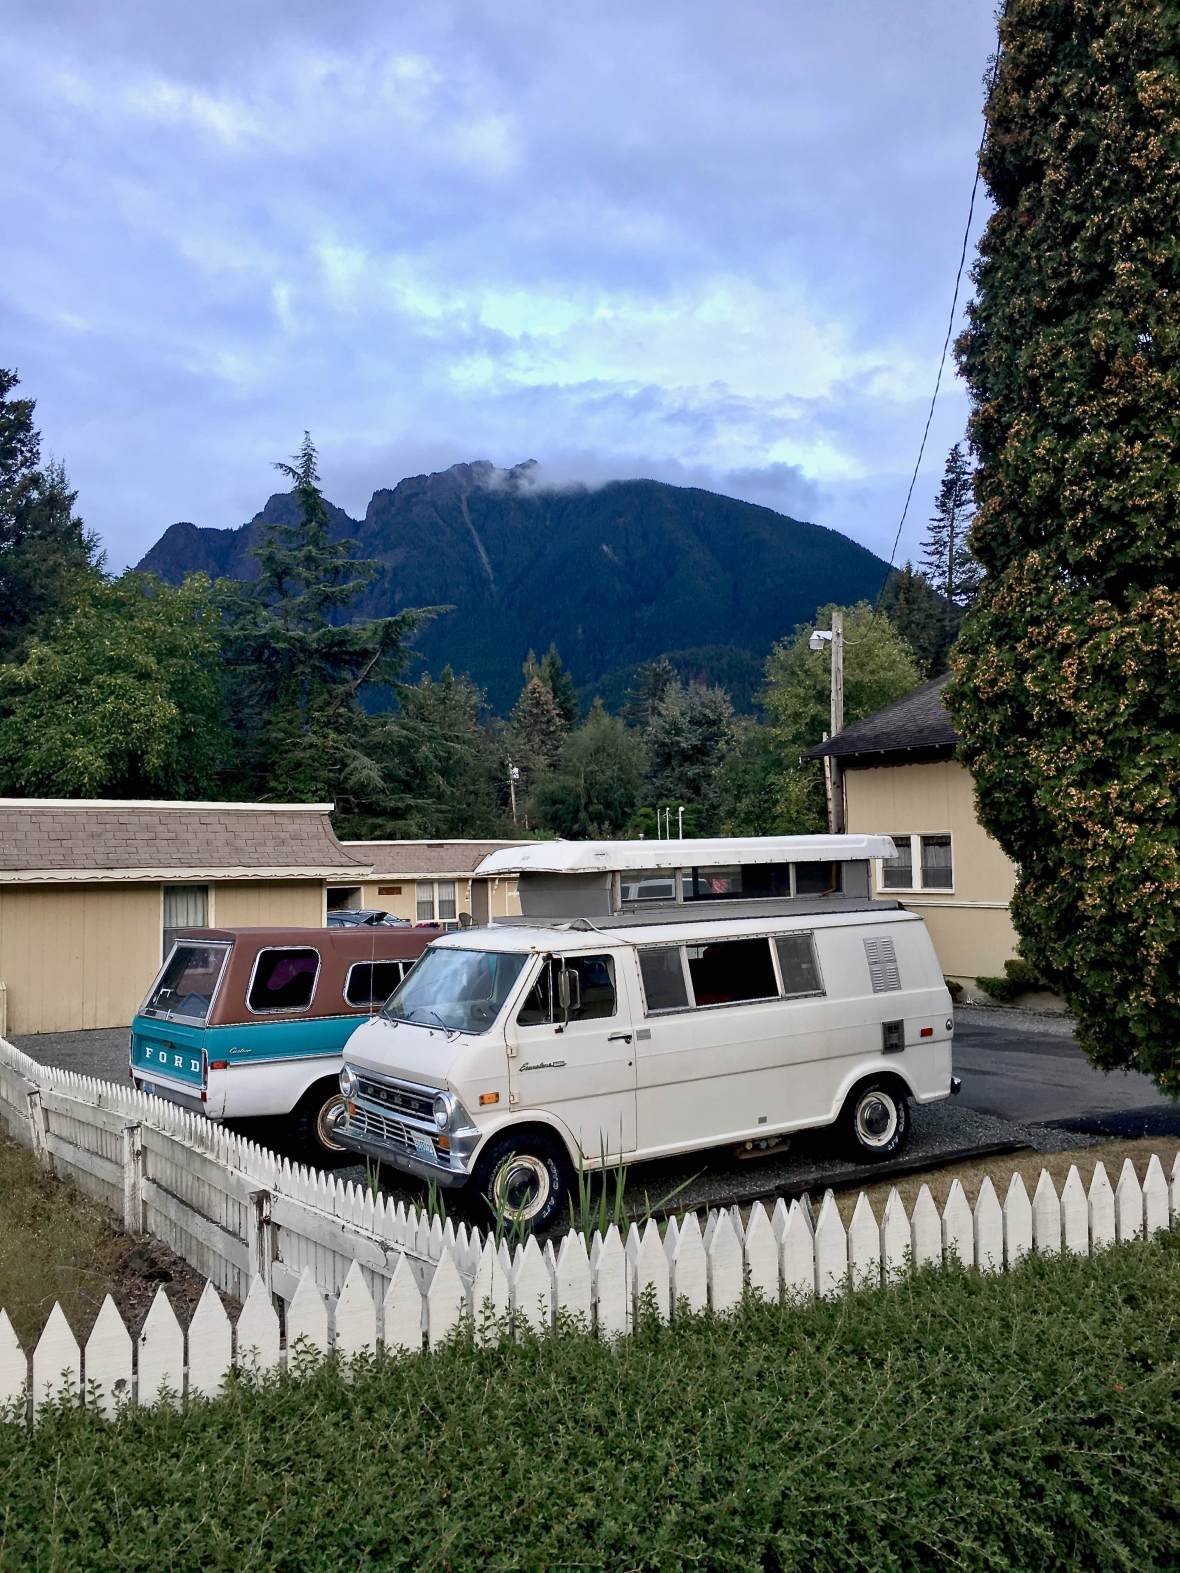 Great vintage campervan with Mt. Si in the background North Bend, WA